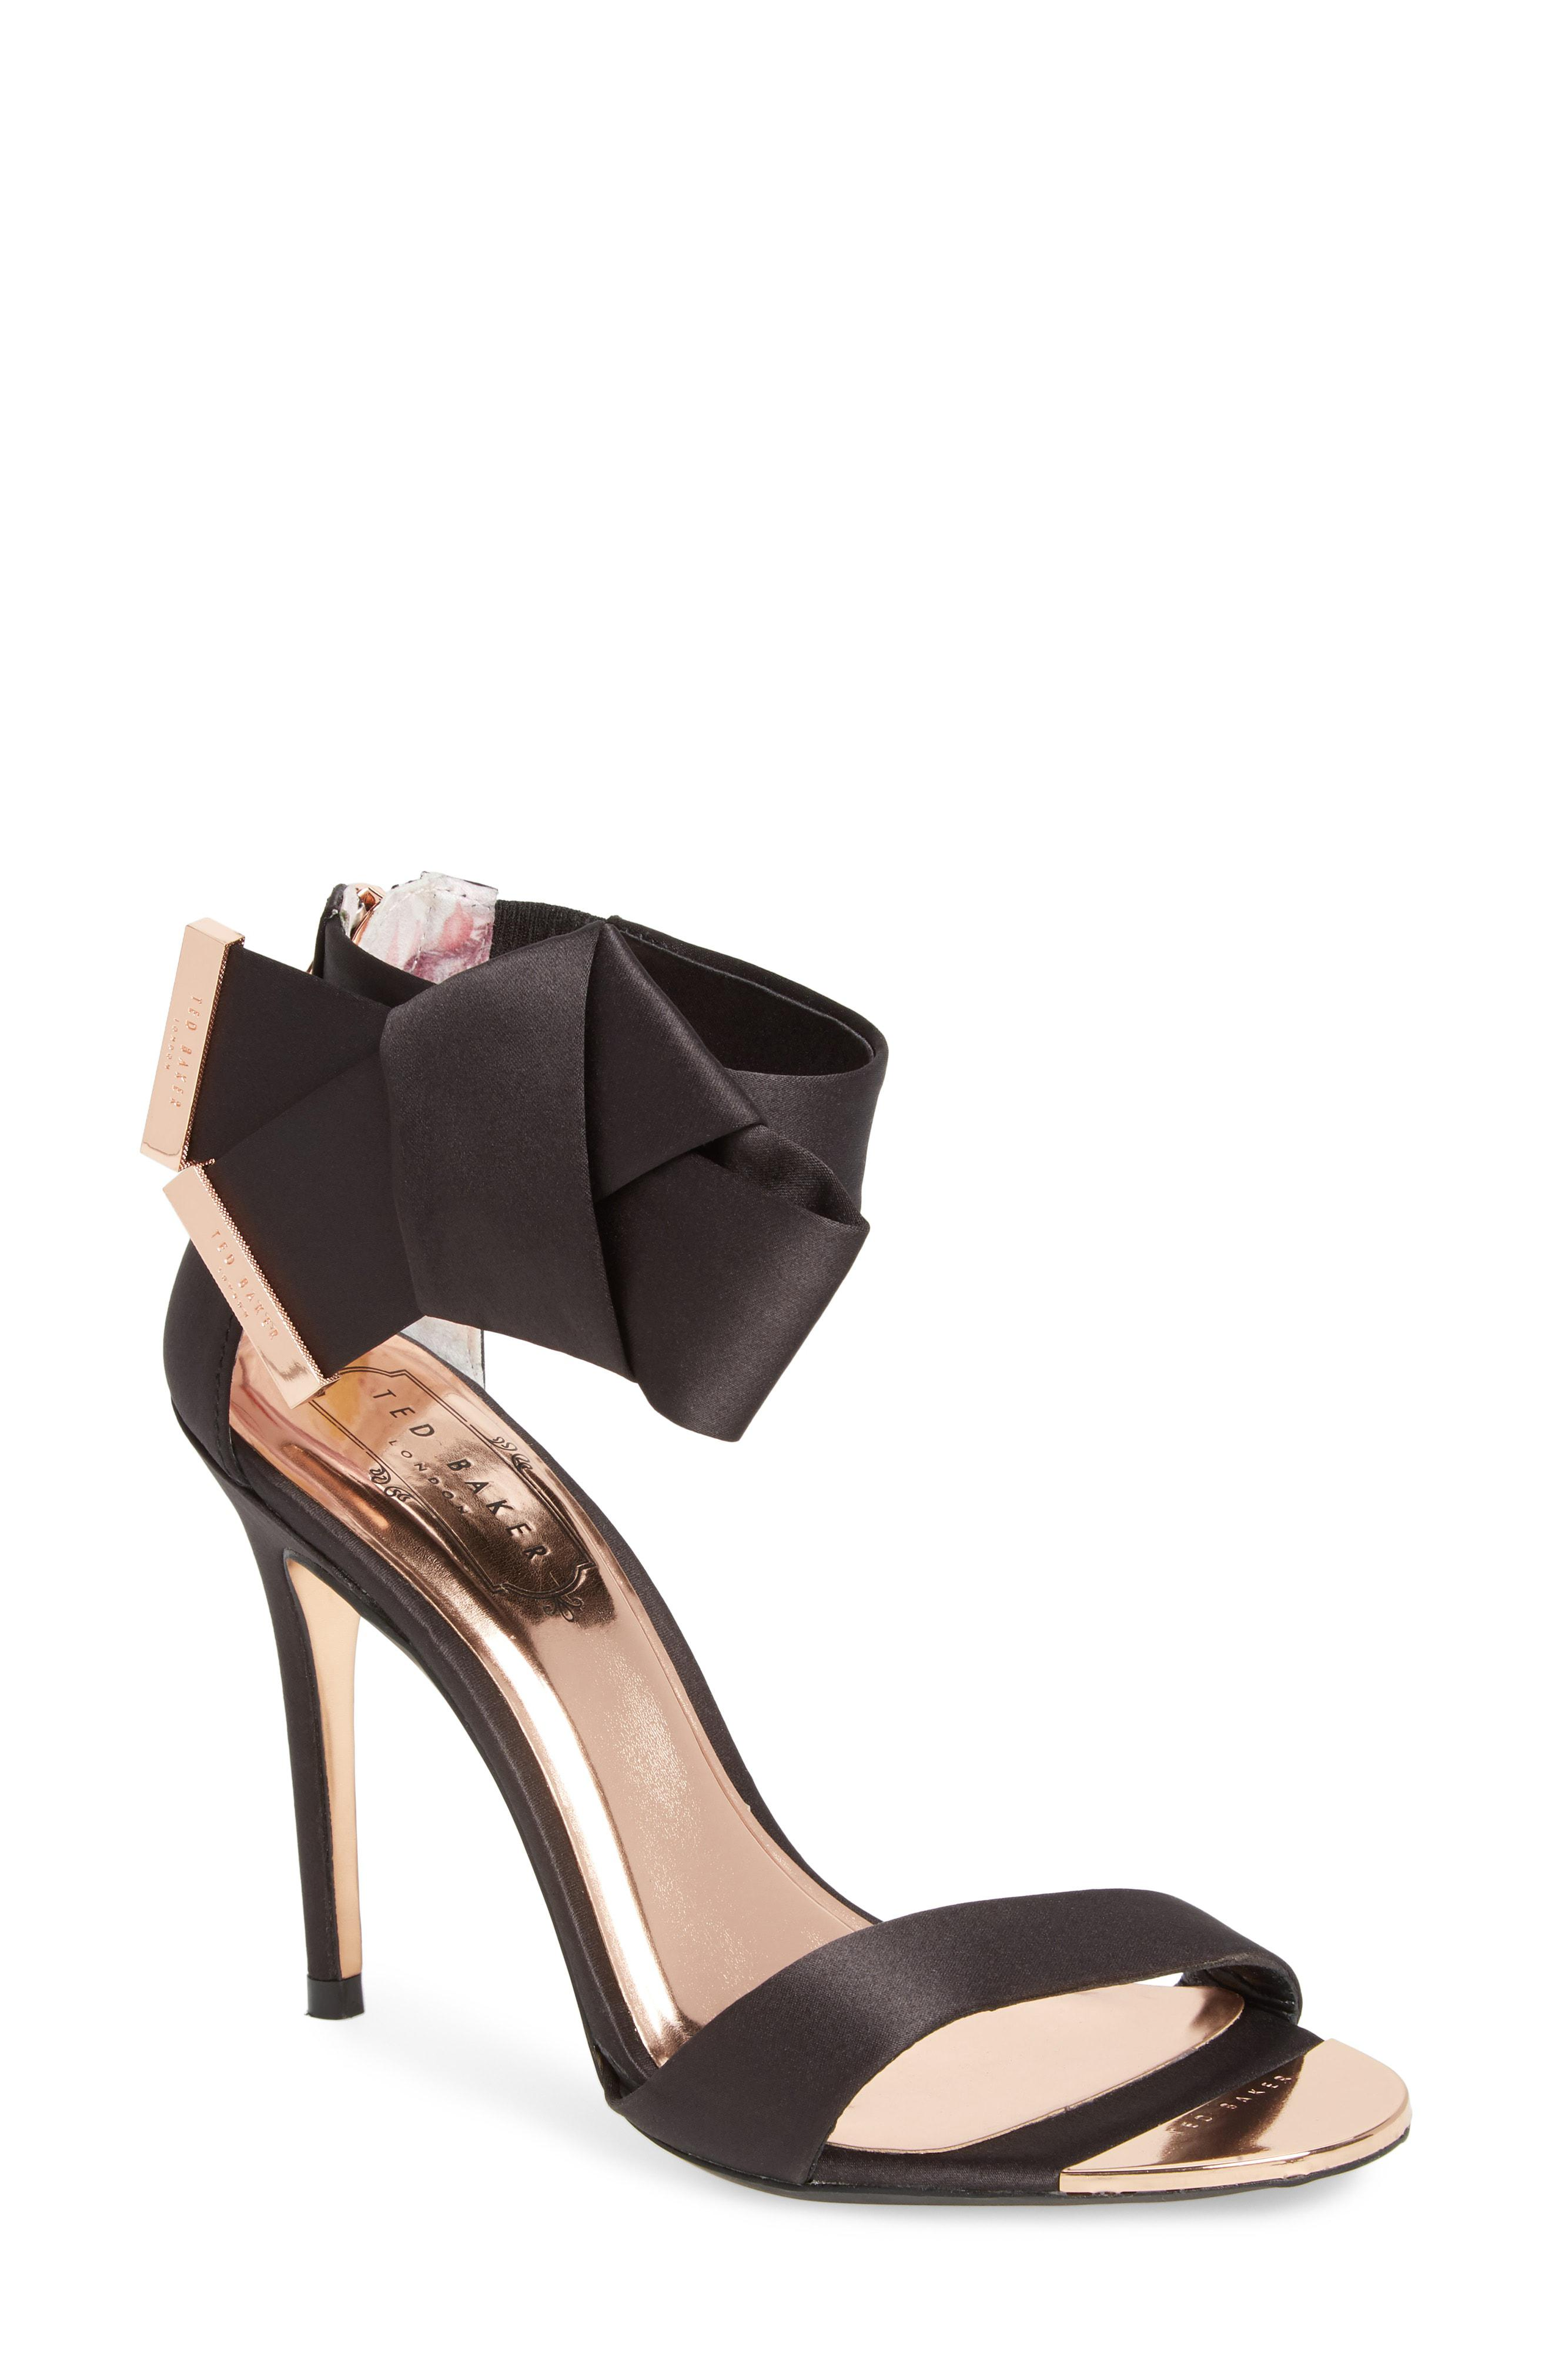 27786011069 Lyst - Ted Baker Elira Sandal in Black